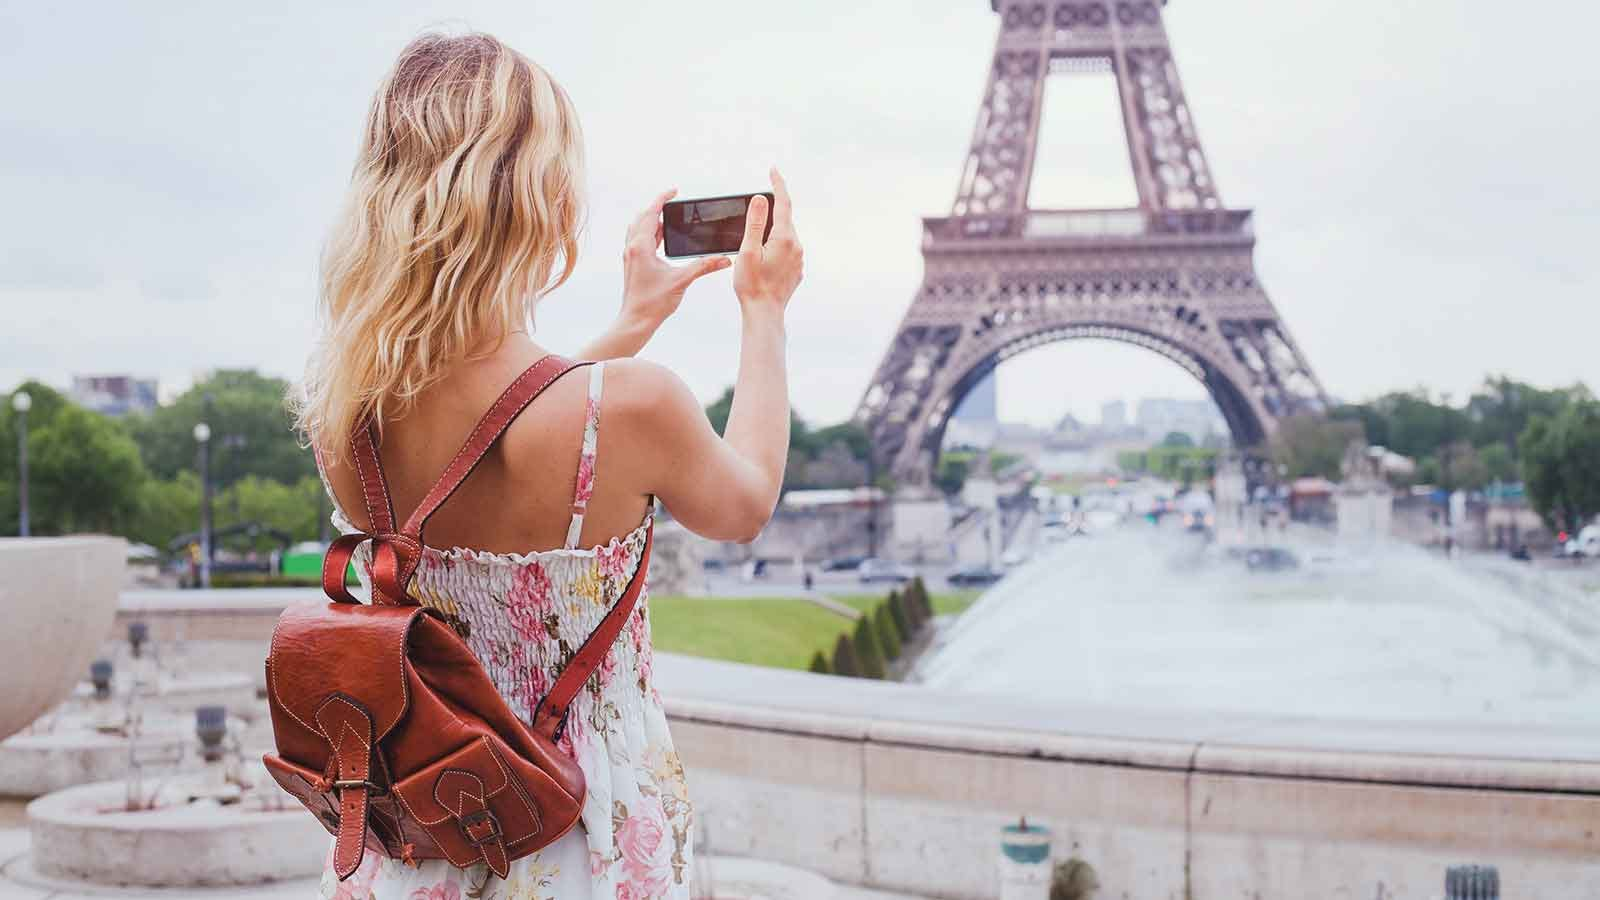 Young woman taking a picture of the Eiffel Tower with her phone.